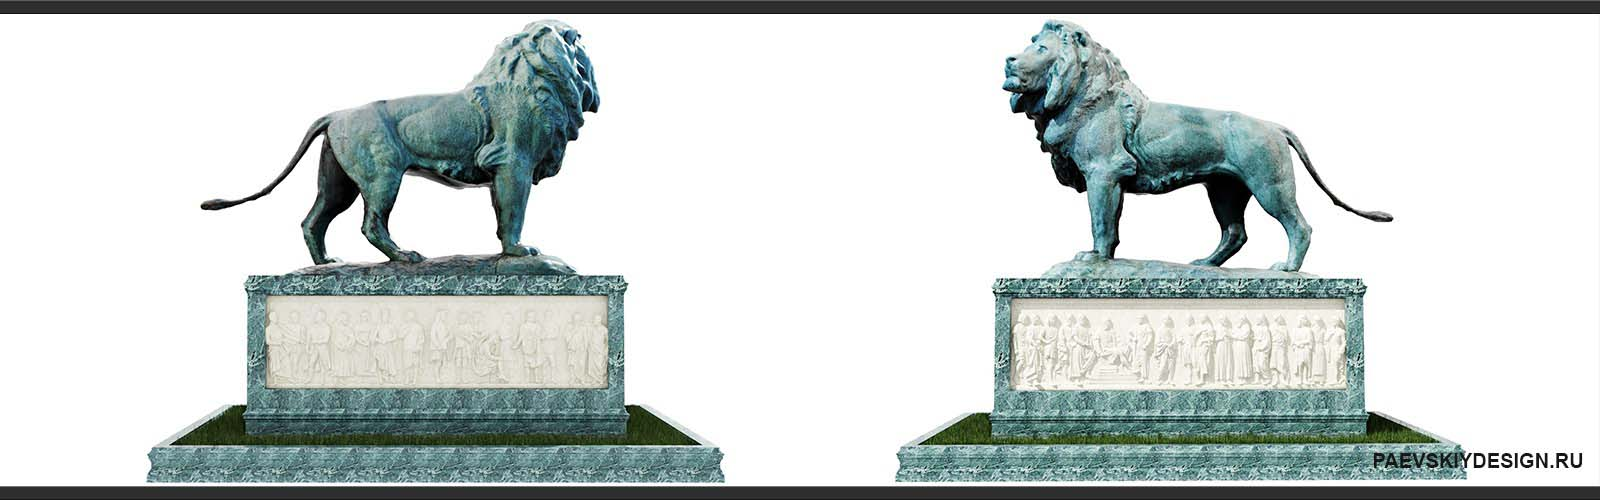 Архитектурная композиция Монумент Lion - The main guard